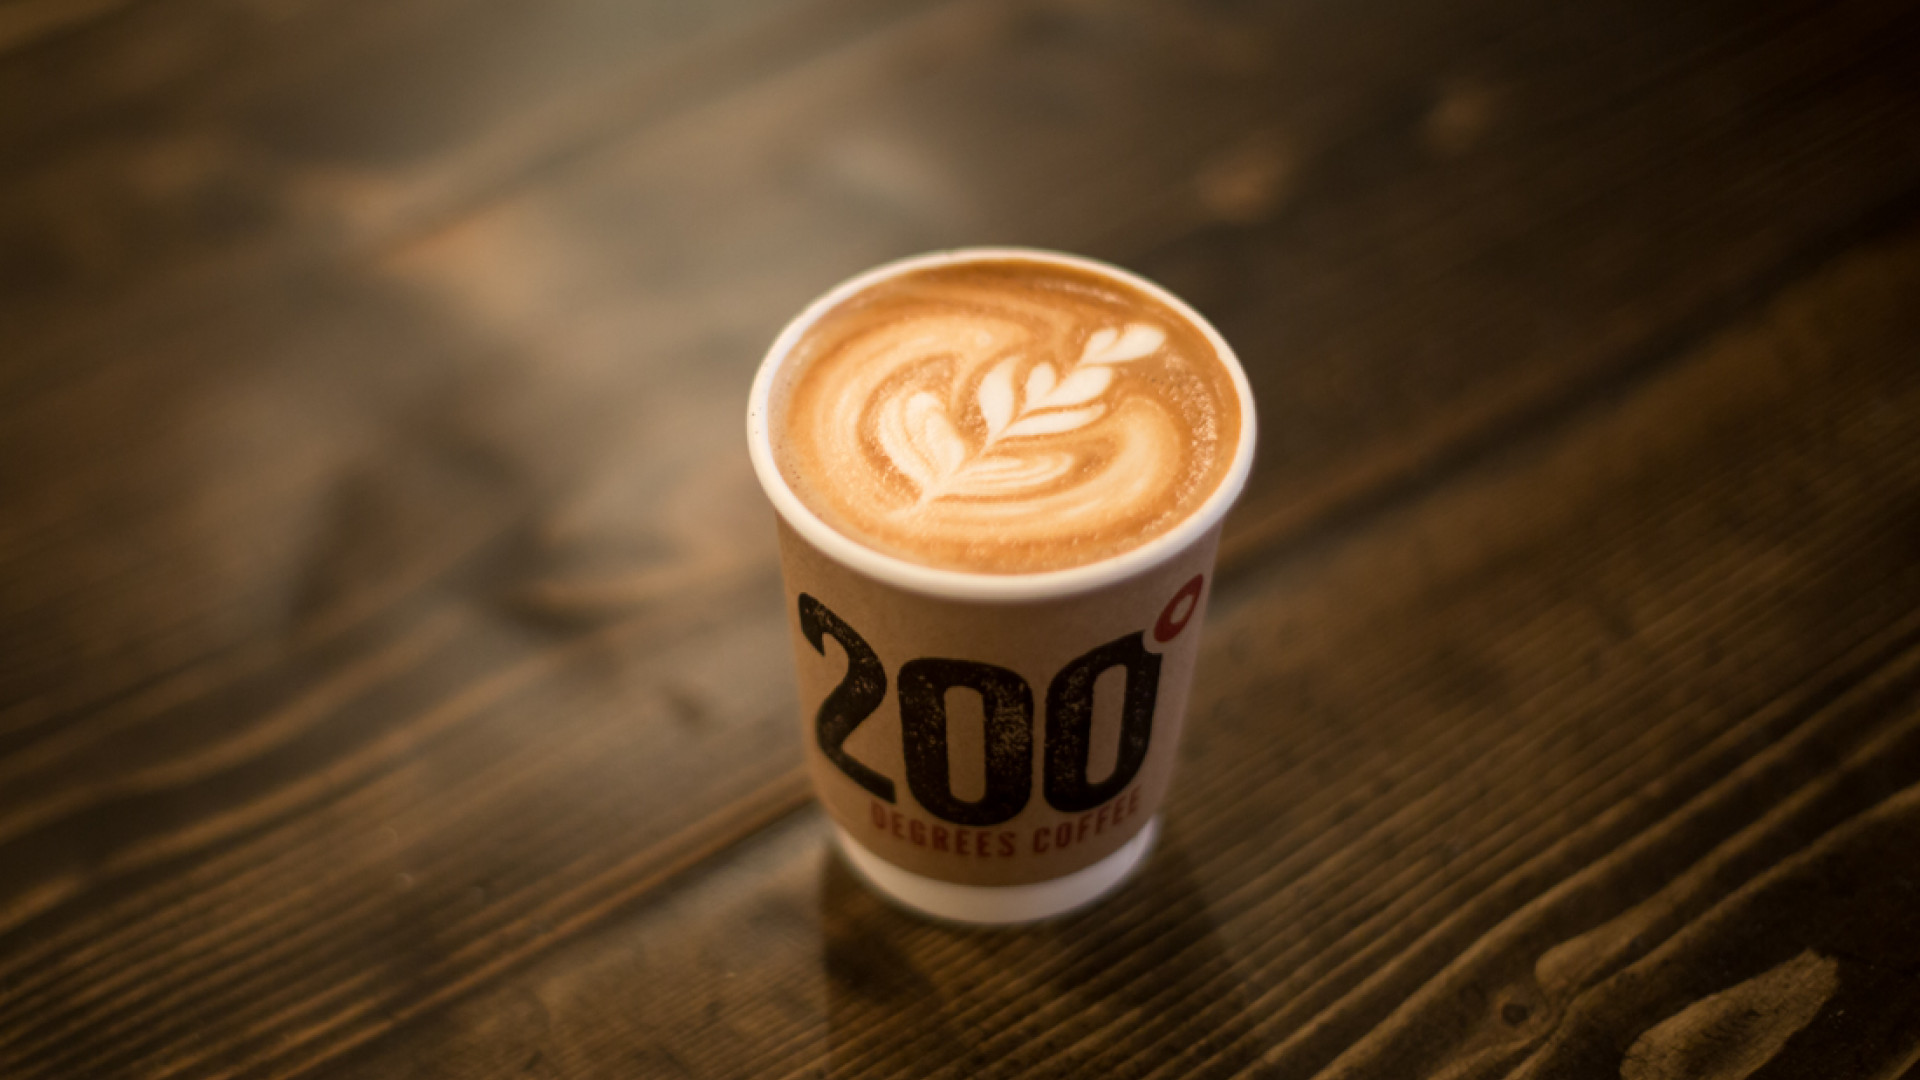 A flat white at 200 Degree café and roastery, Nottingham